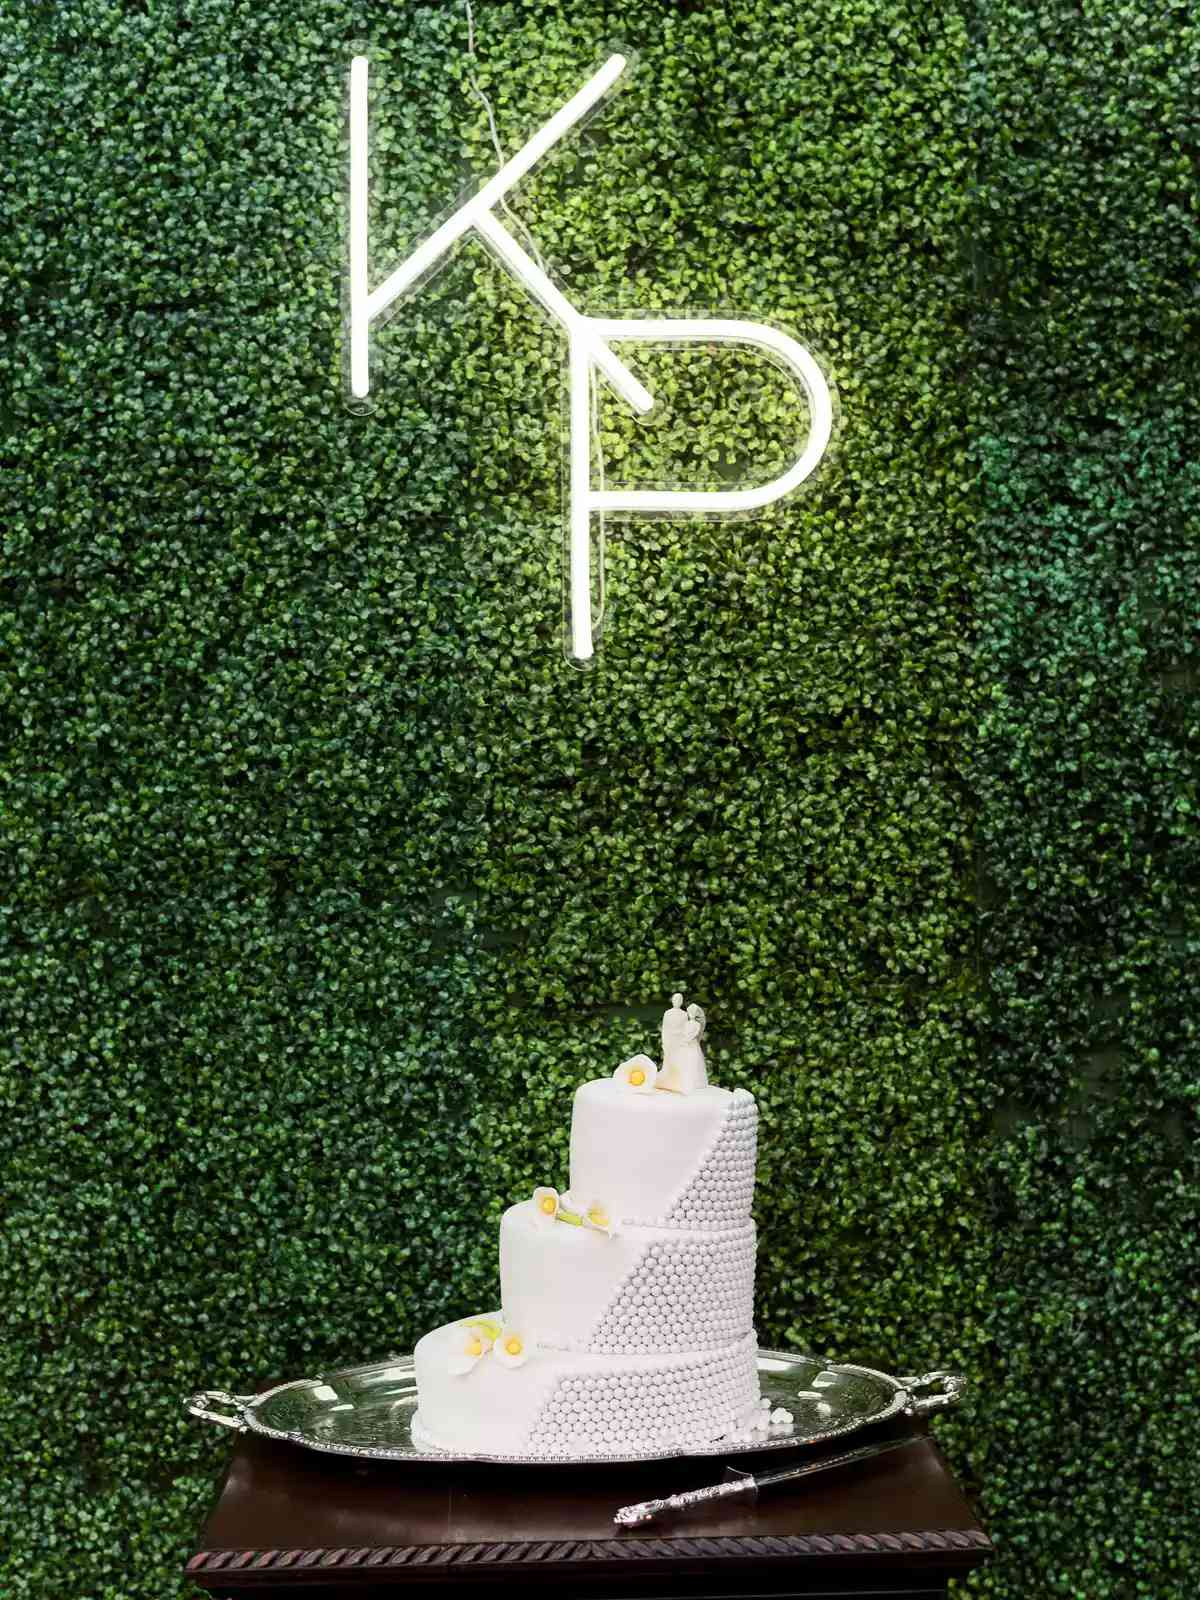 Neon sign as background of wedding cake